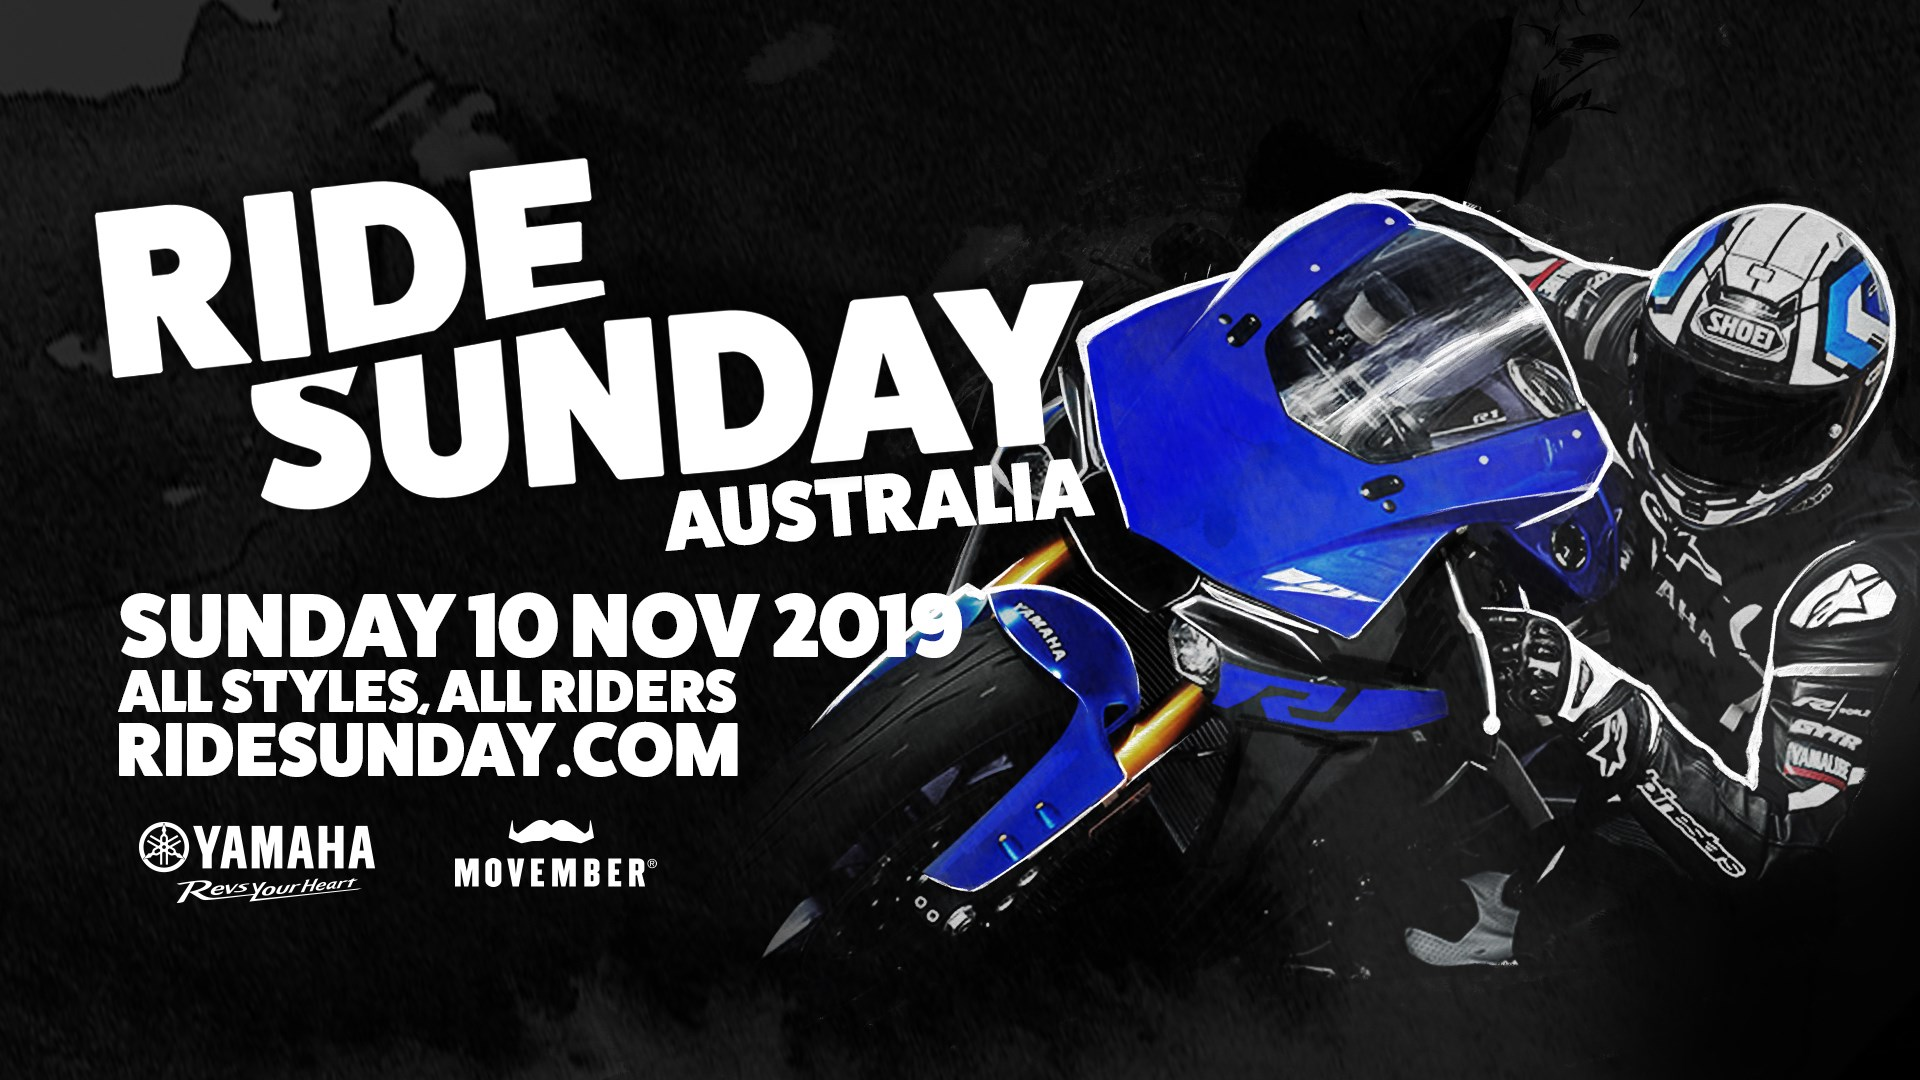 Ride Sunday Australia 2019